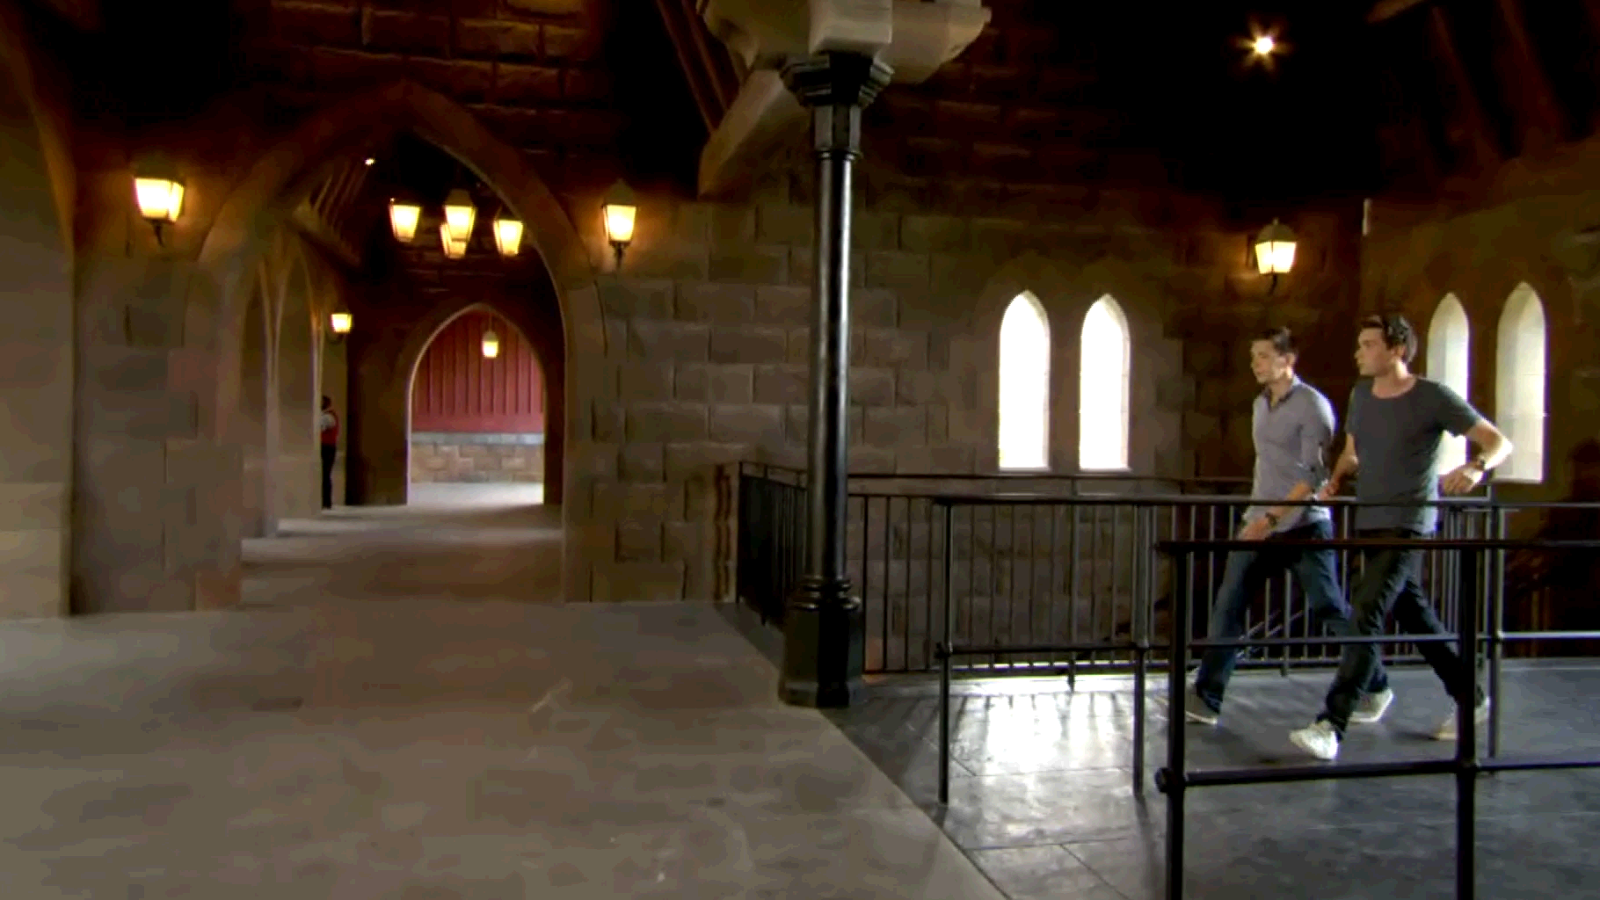 InSanity lurks Inside: A Closer Look at The Hogwarts ...